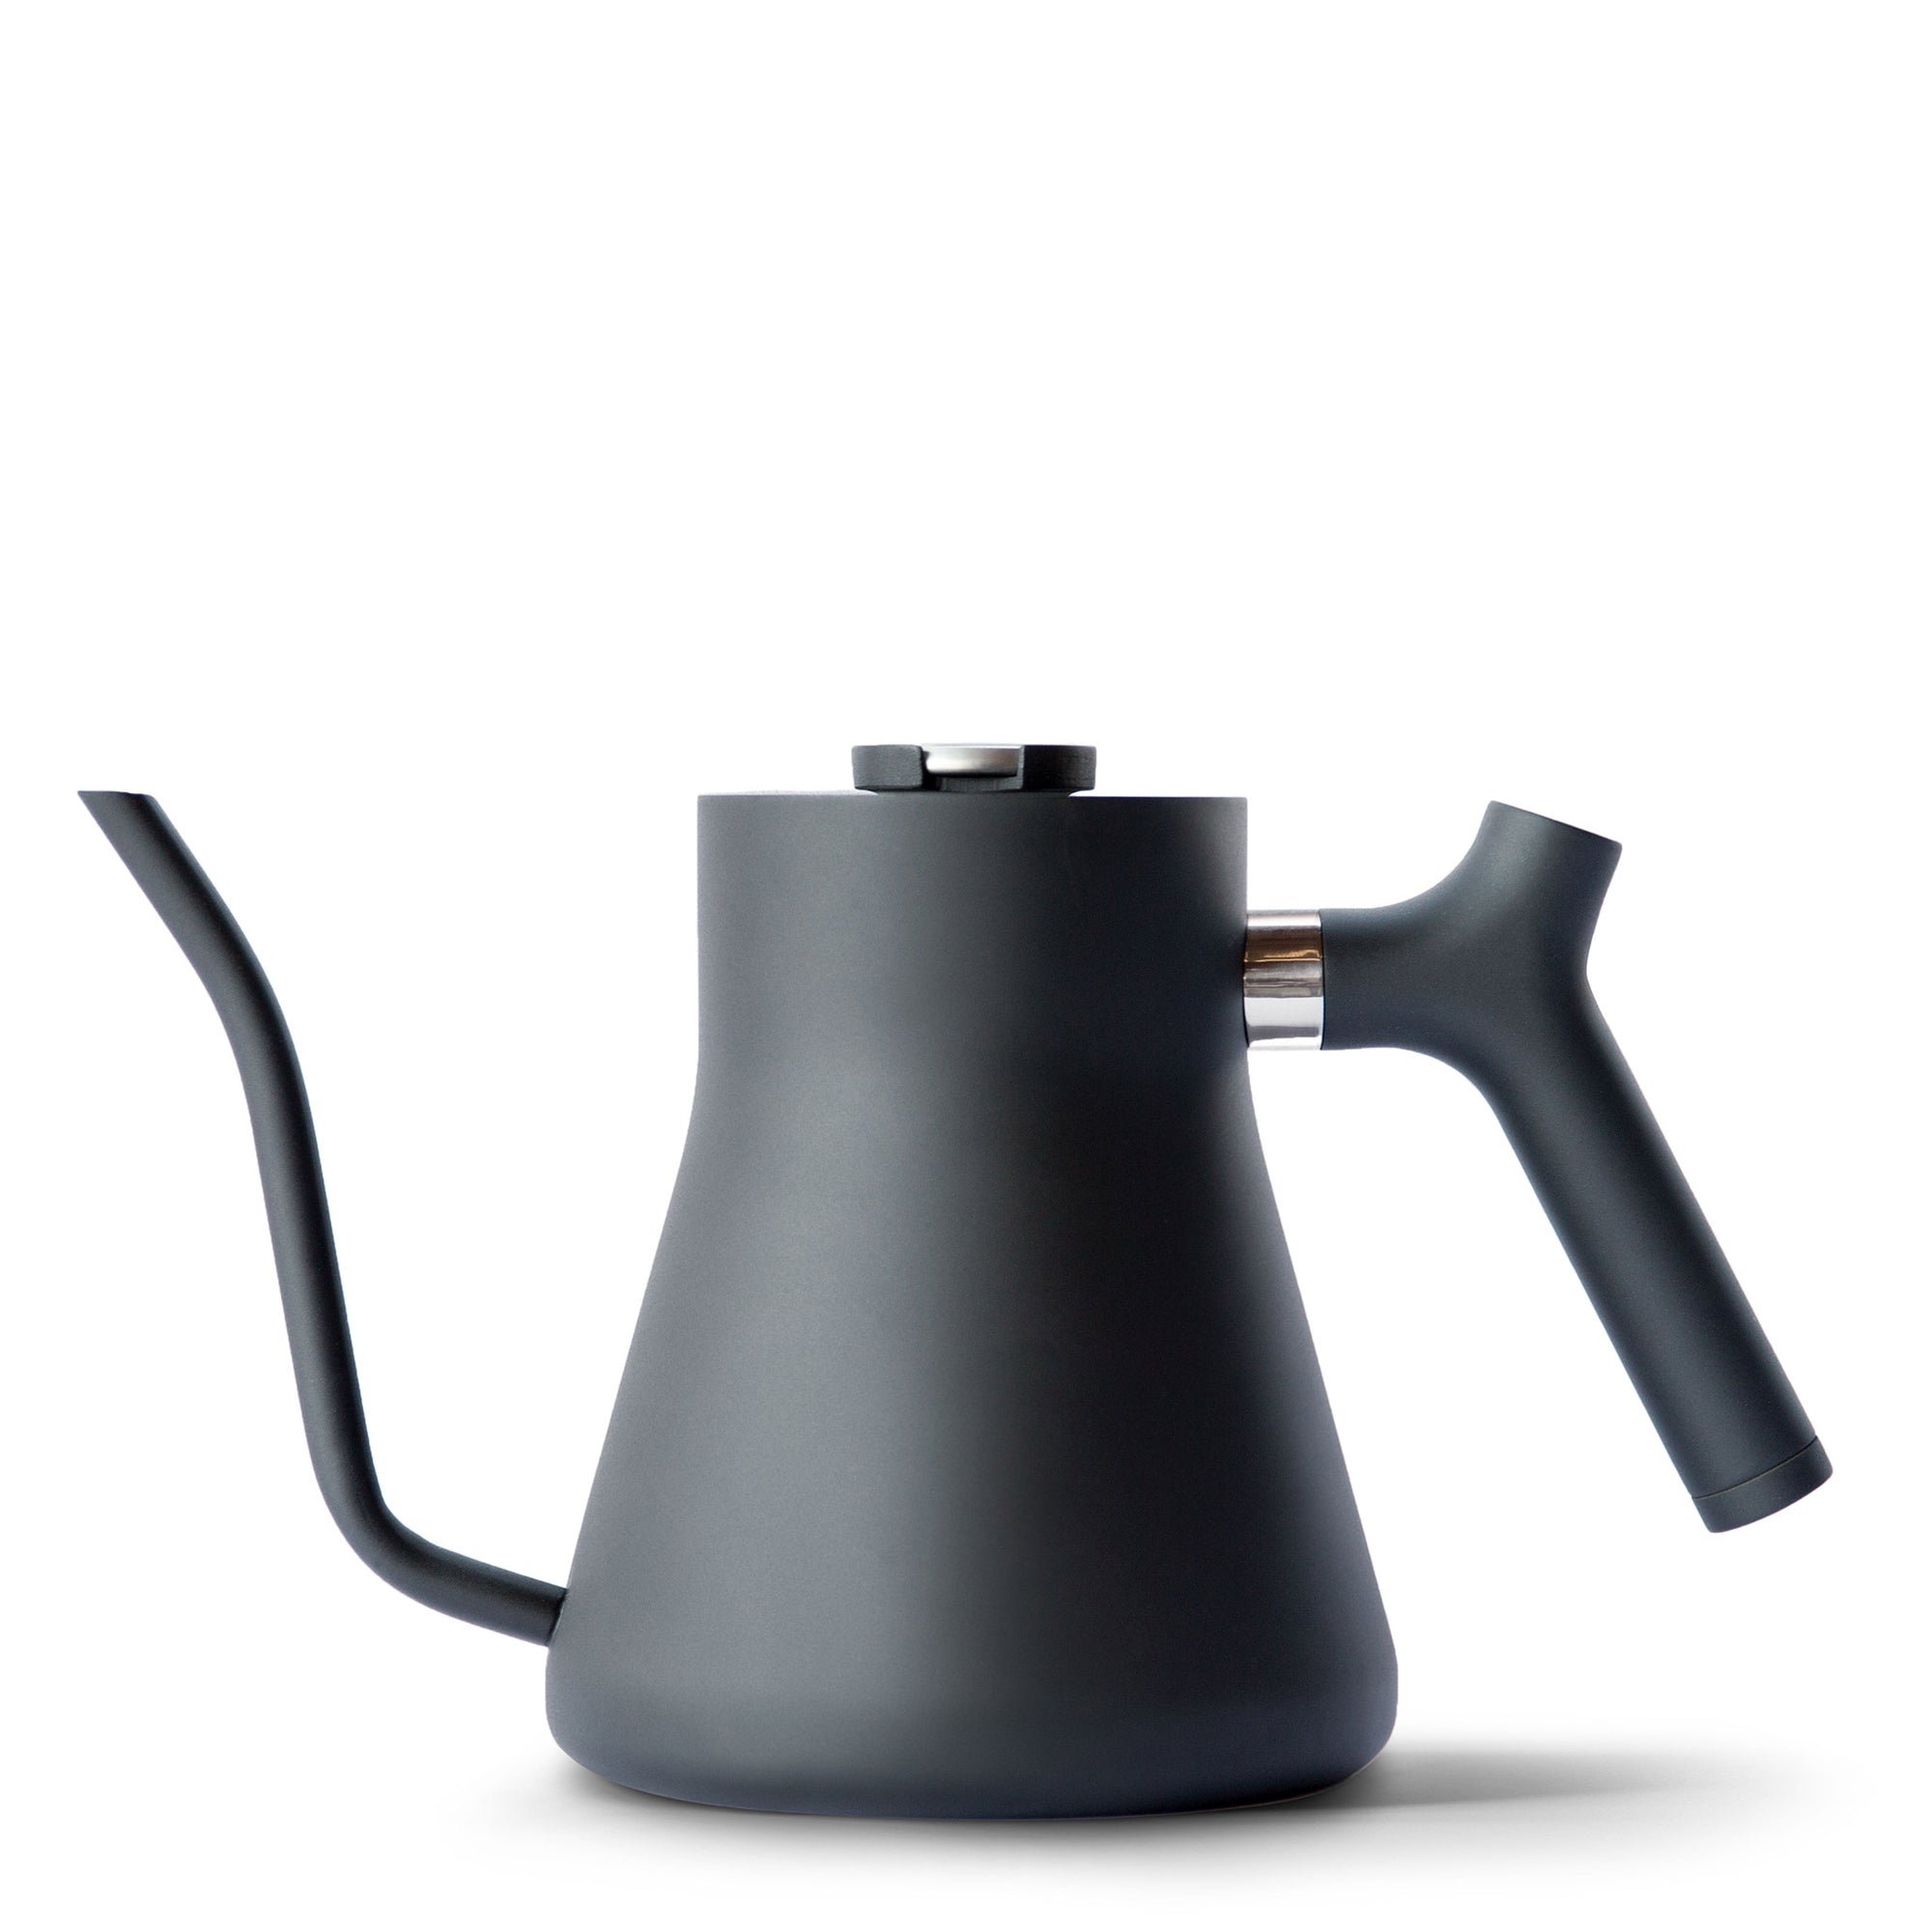 Stagg Pour Over Kettle - Black - Espresso Gear